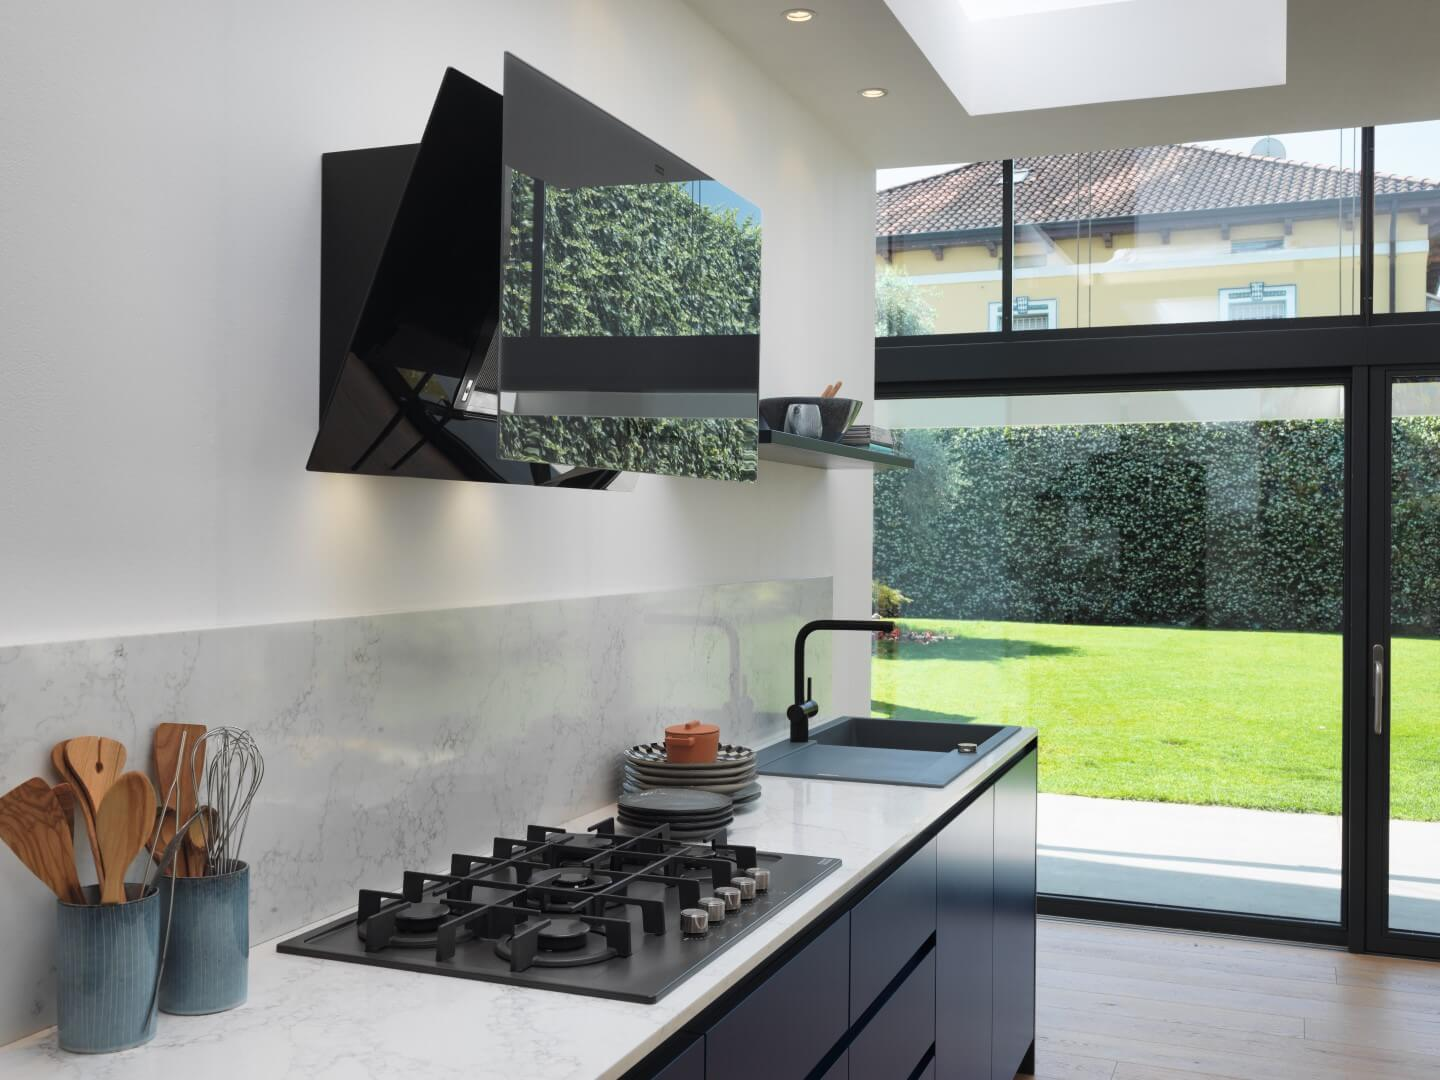 2020 Appliance News Latest Launches For An On Trend Kitchen Design The Kitchen Think